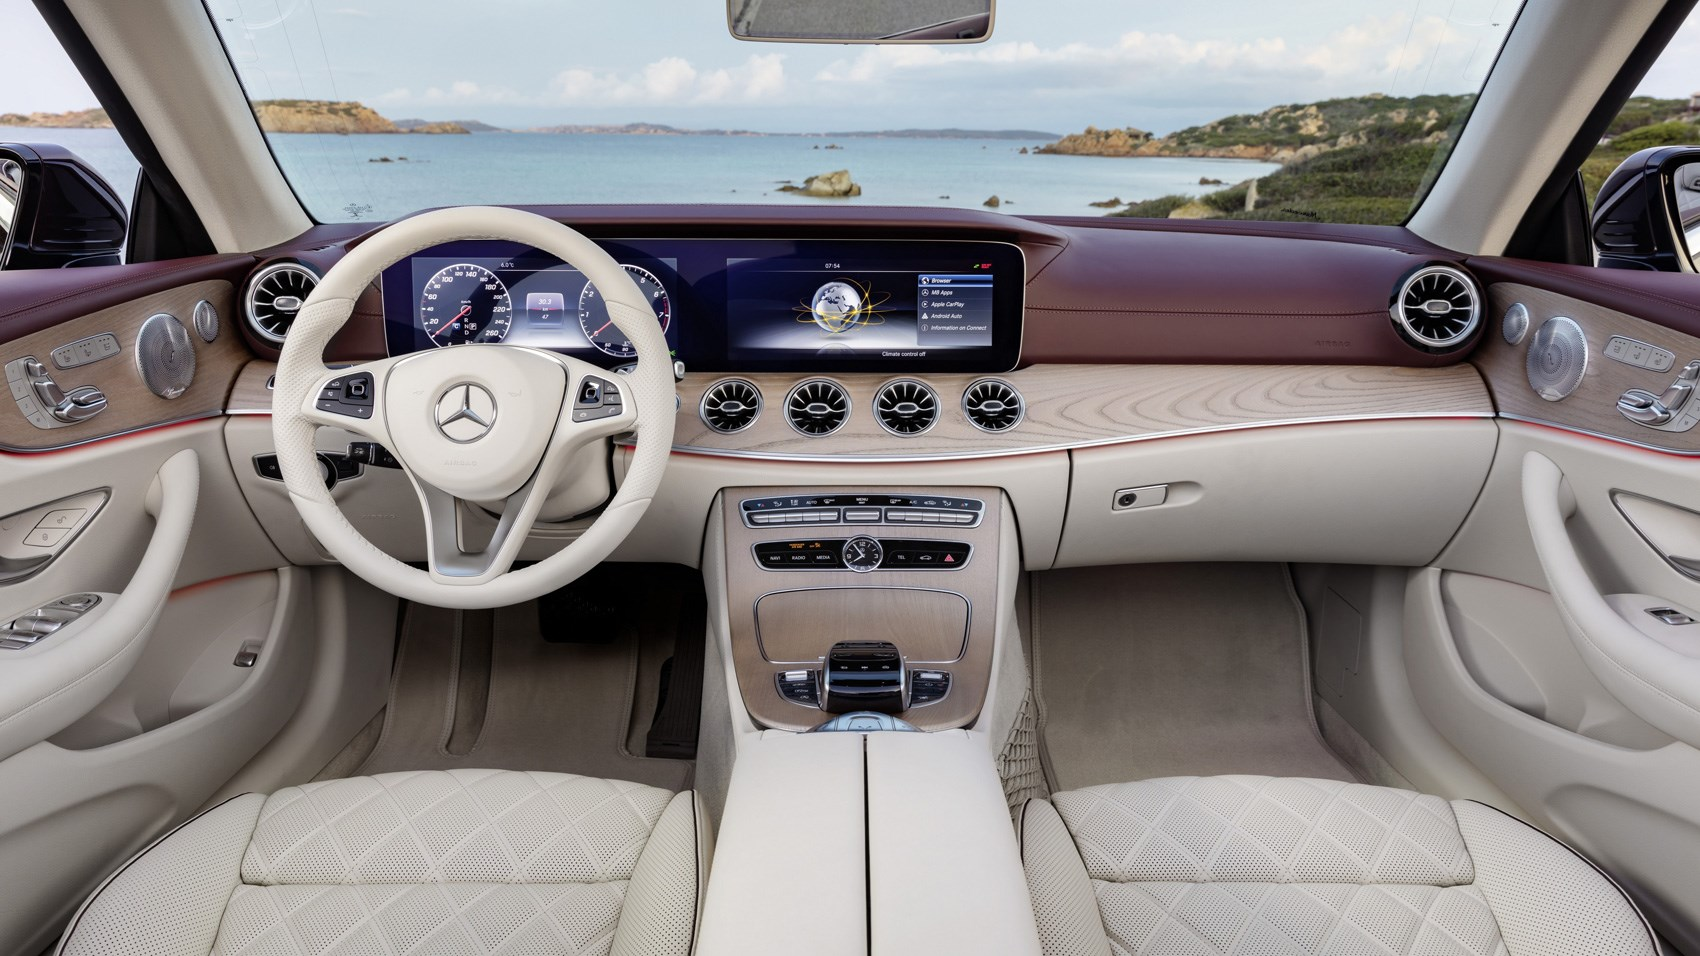 Mercedes E Class Cabriolet 2017 Review also Interior furthermore Mercedes Abc Drive Carefully blogspot further 2014 Mercedes Benz E Class Cabriolet Review 2014 furthermore Watch. on 2010 mercedes e350 roof